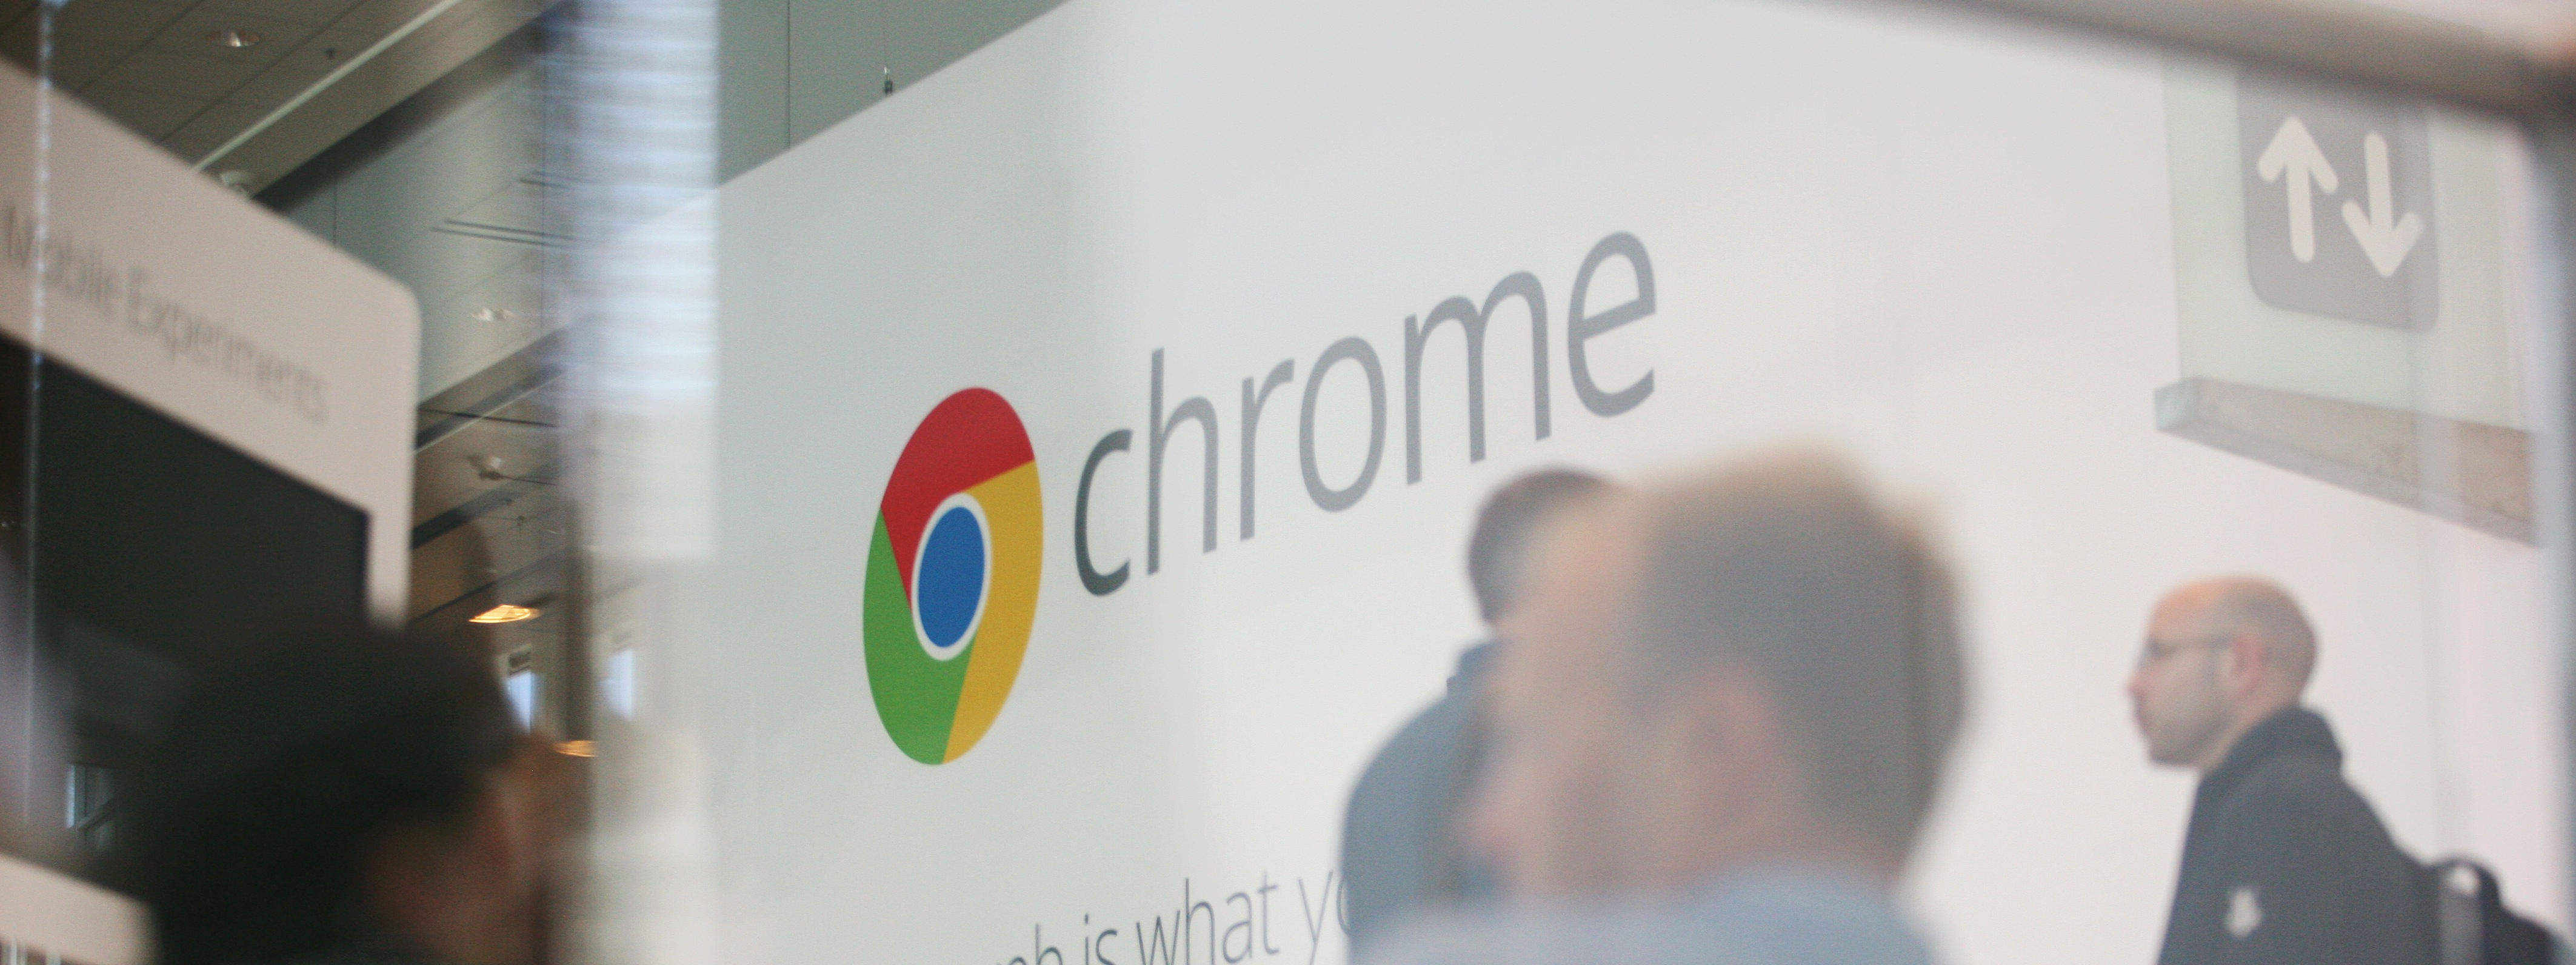 Google now lets Chrome OS users access their Windows desktop and apps